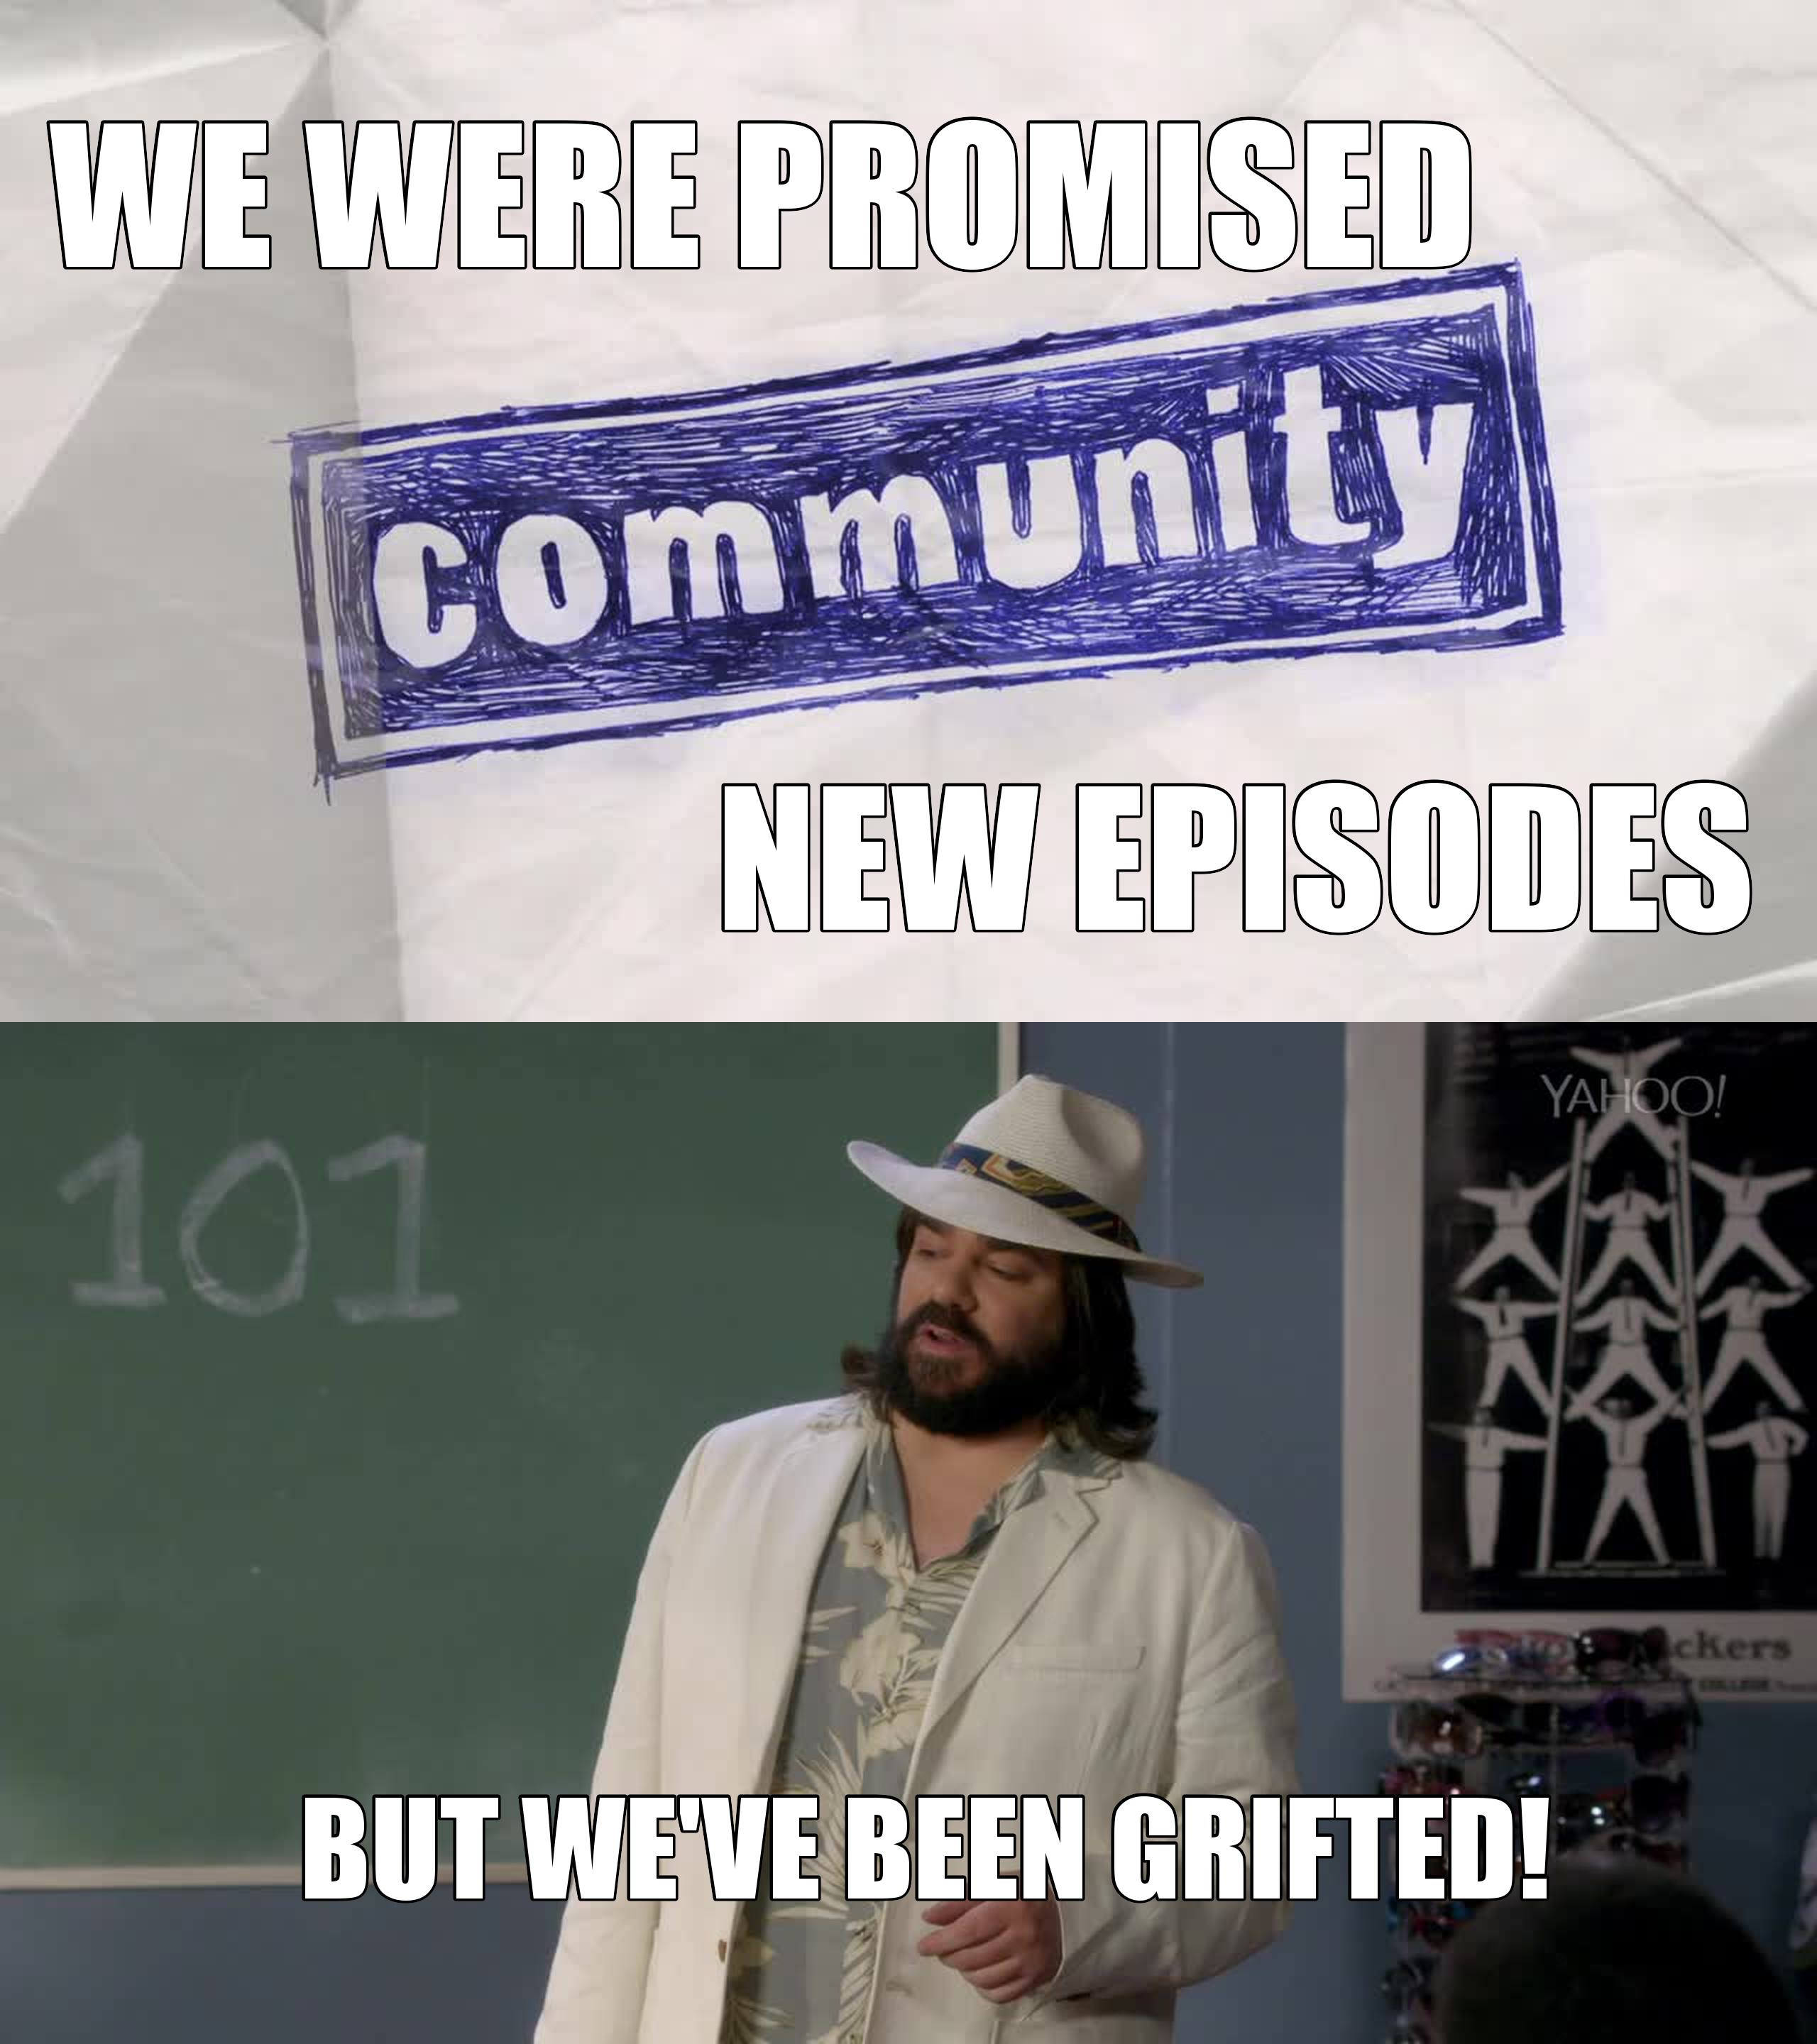 Joke aside... this episode wasn't really good. Couldn't follow up last week's episode. People disliked the last one also, but I did like it. Abed's movie was funny. This season isn't consistent, but it is still Community. Just a couple episodes bad so far.   I'll keep hoping it gets better, and I'll always want more of it.